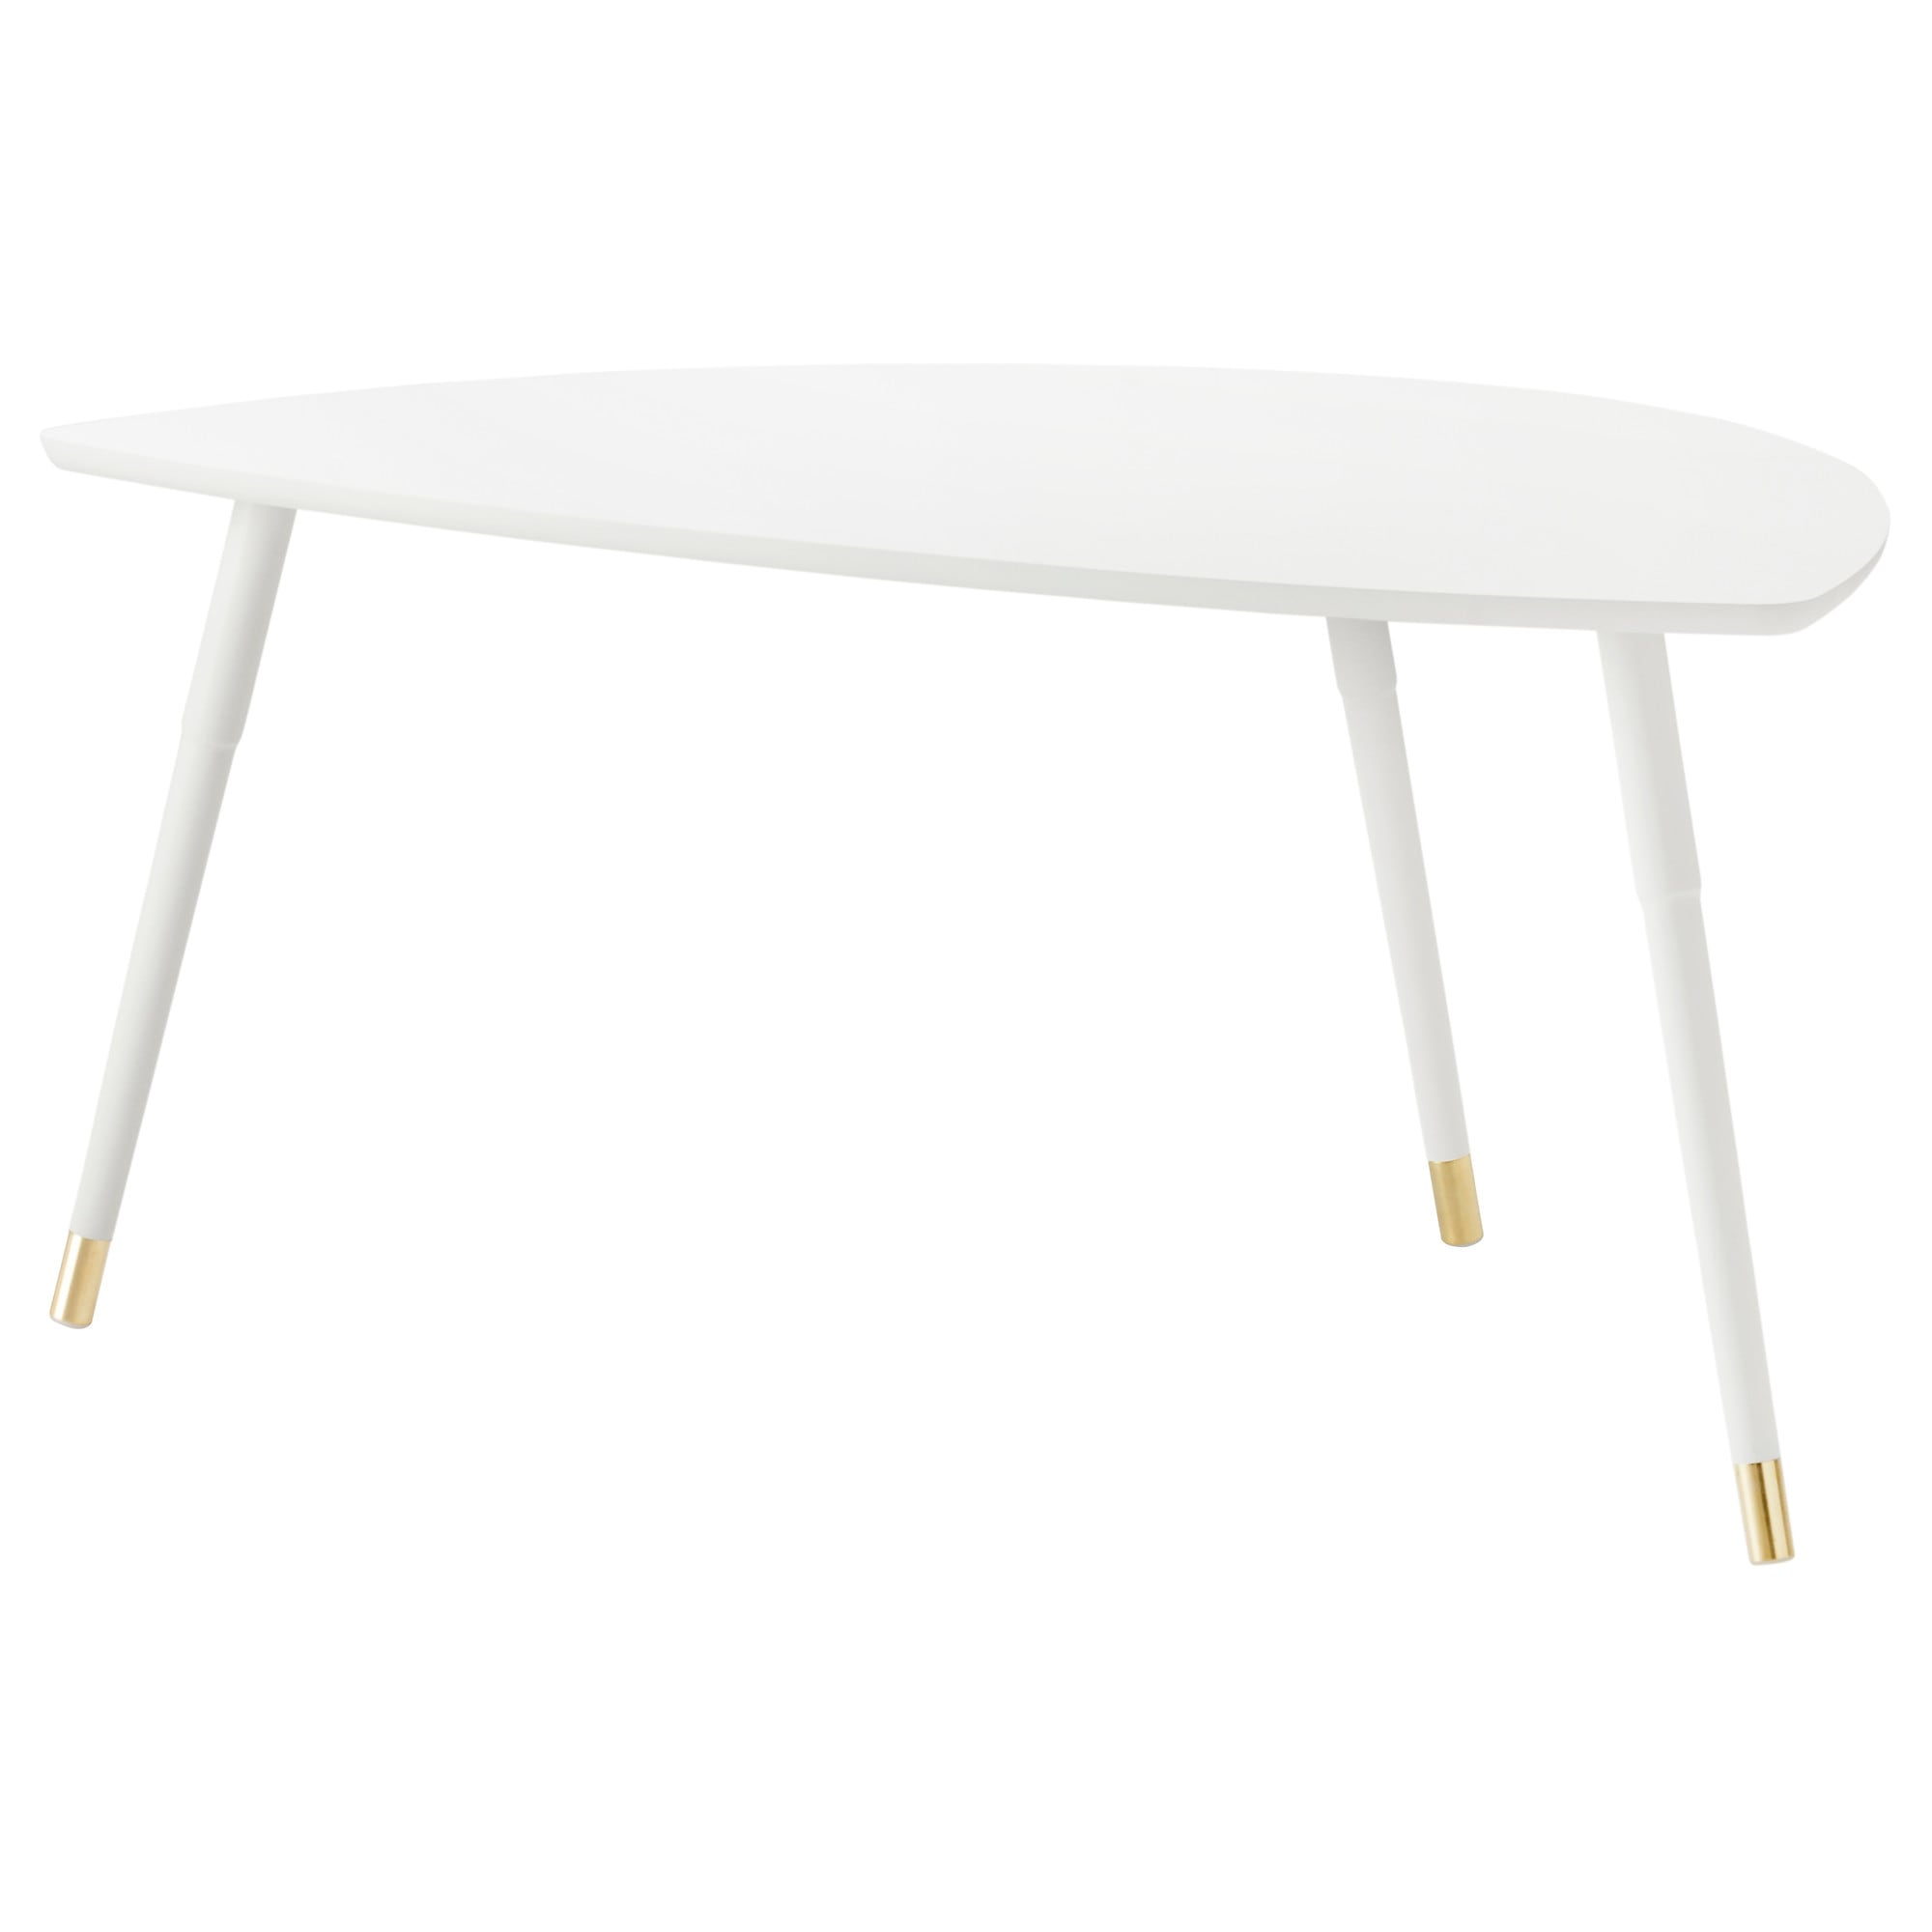 Table basse relevable ikea suisse - Ikea table basse blanche ...